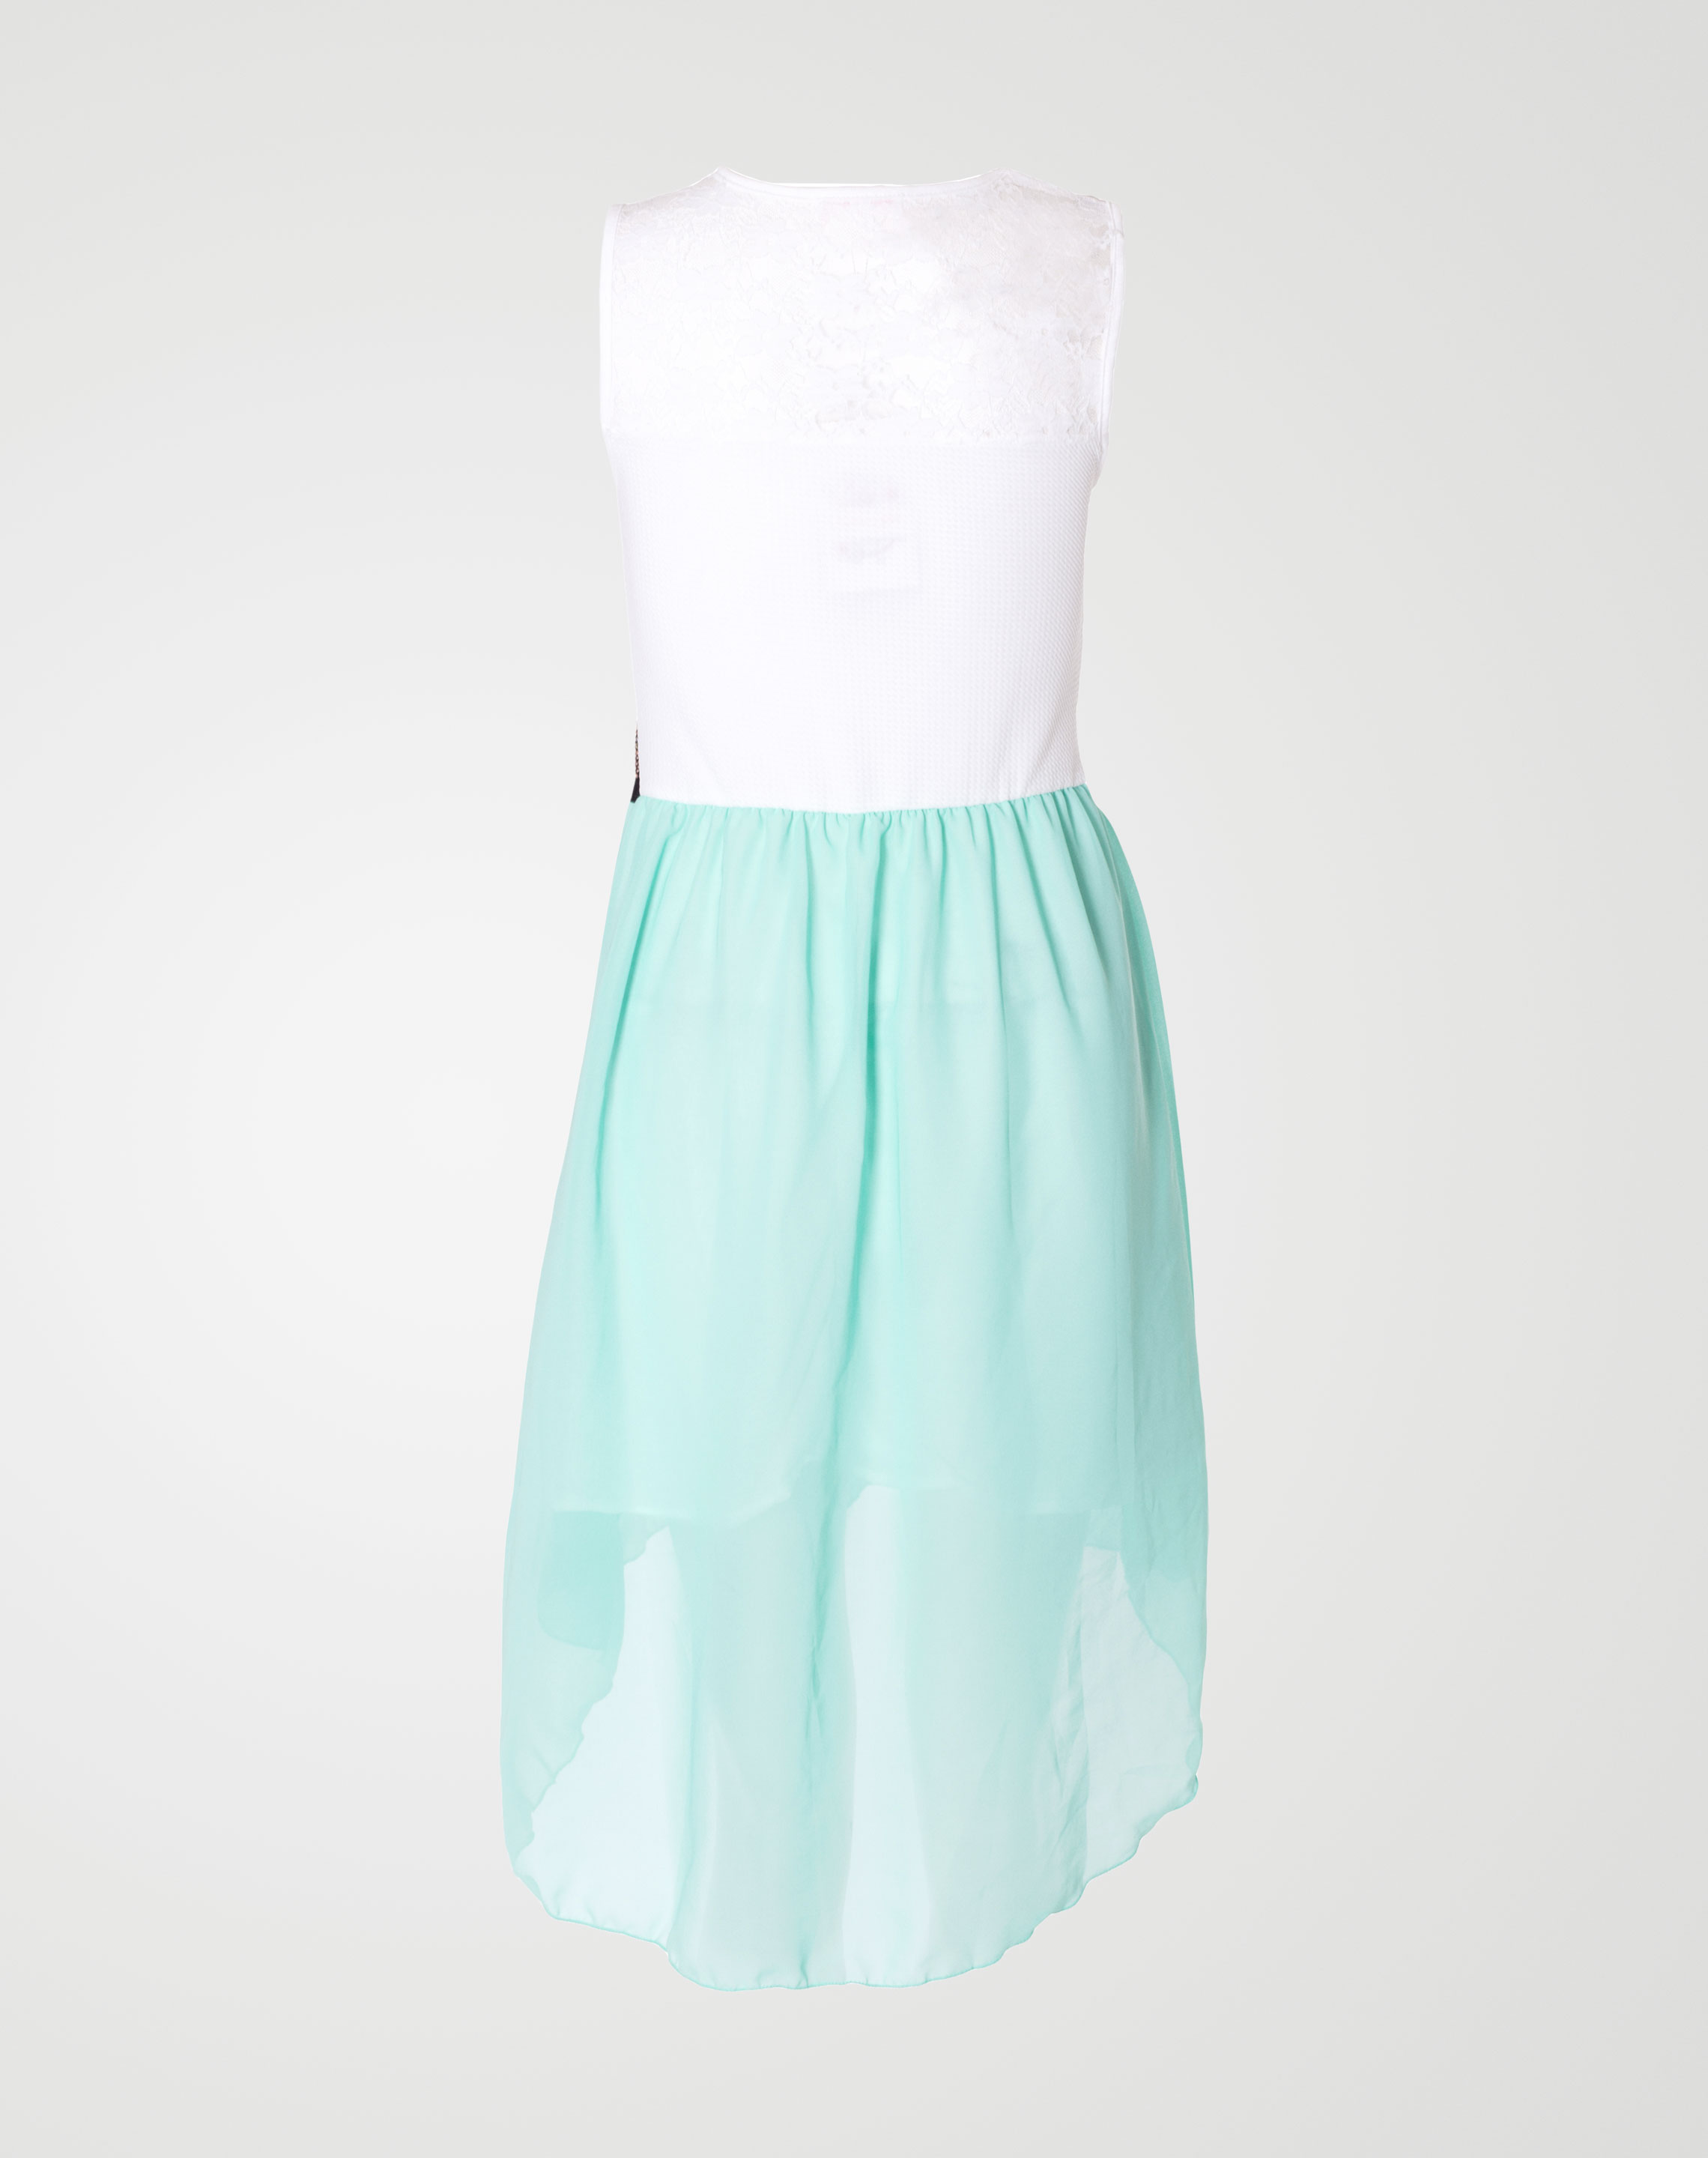 Image 2 of Girls Lace Chiffon Dress color Mint and sizes 7-8, 9-10, 11-12, 13 from Noroze